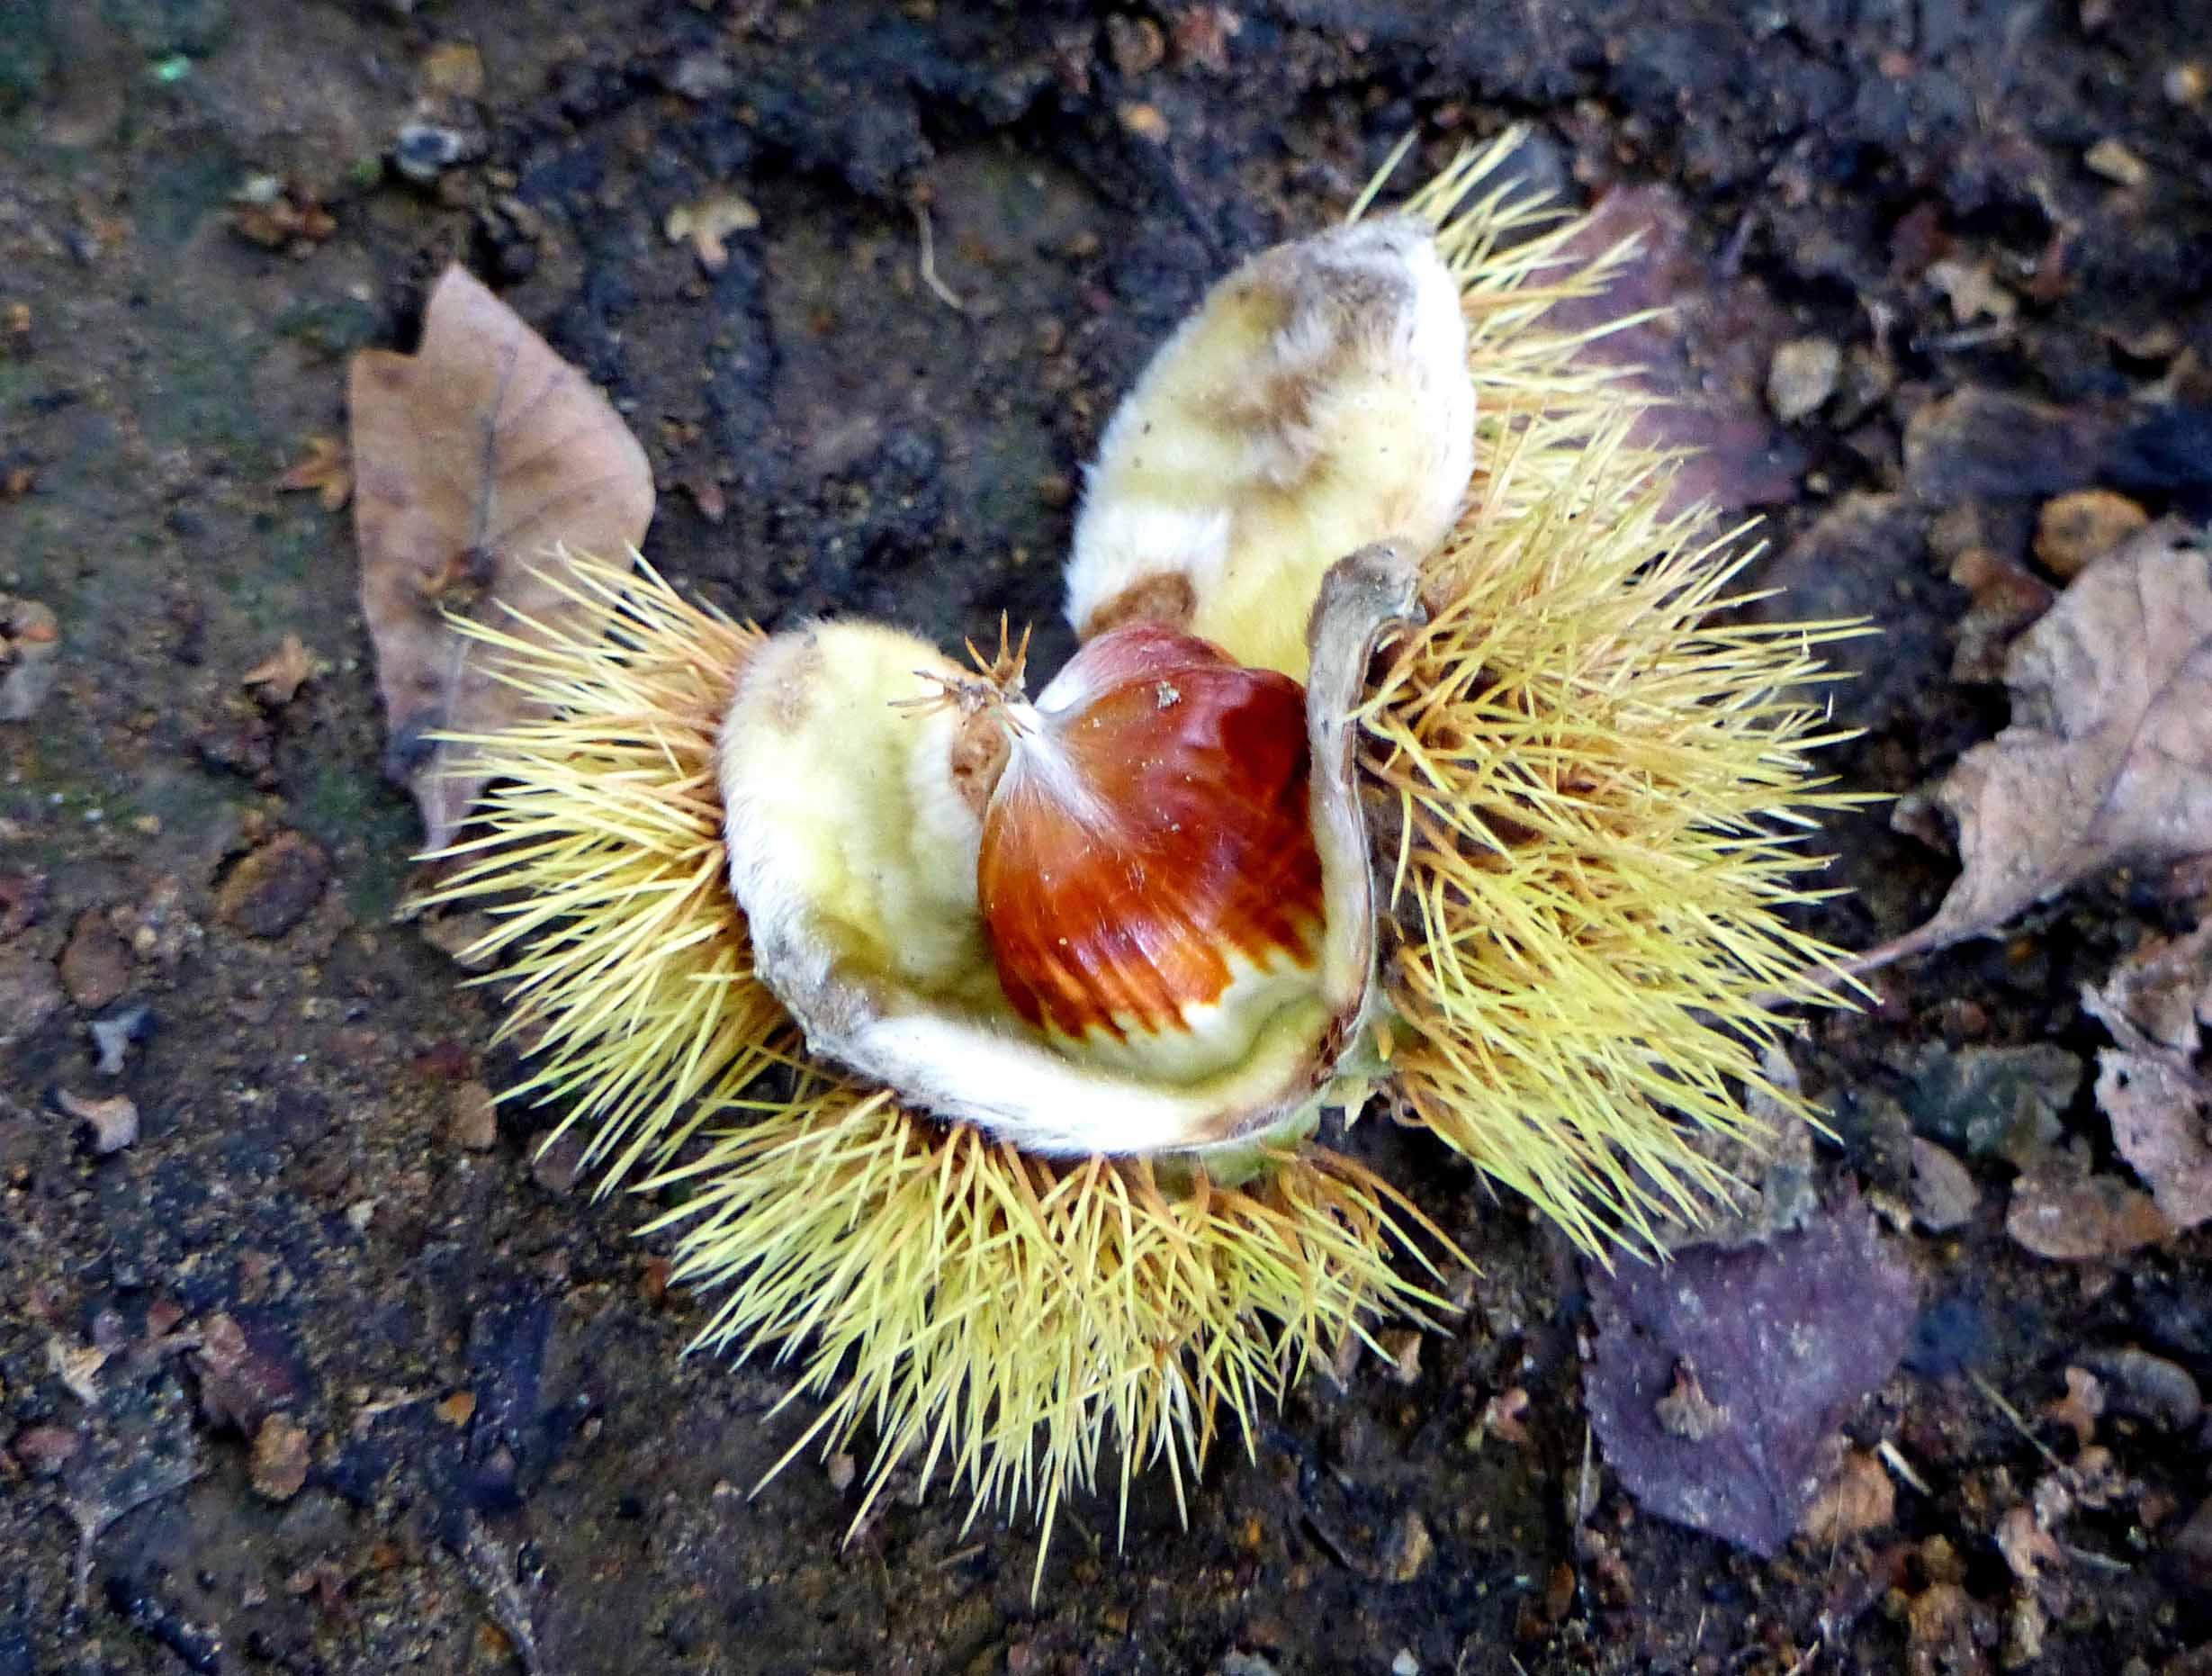 Conker on the ground in its prickly case